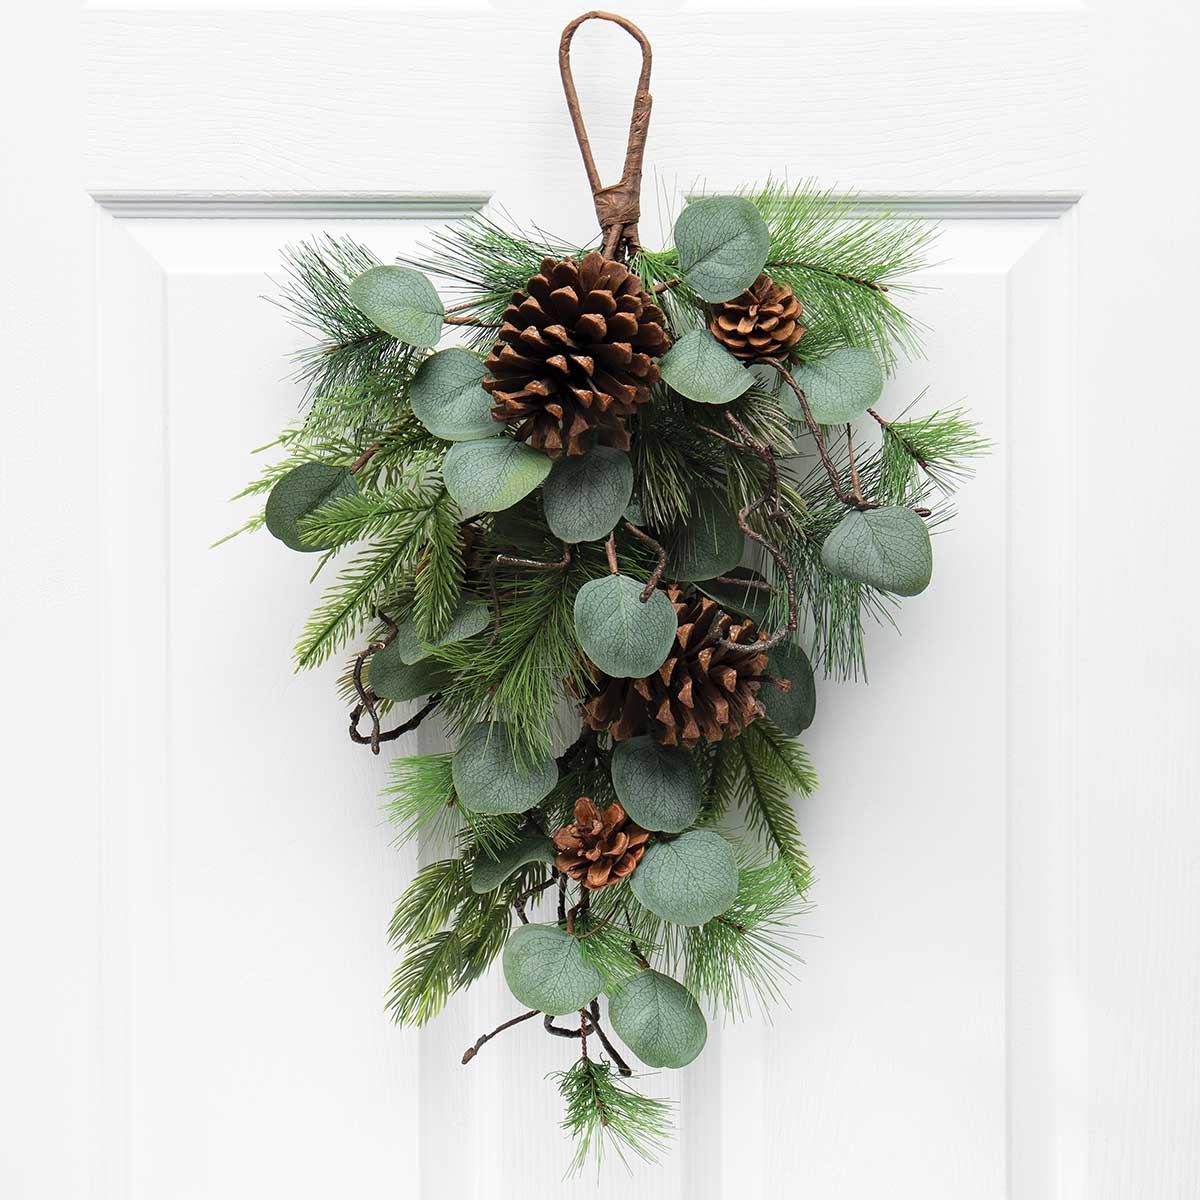 FRESH CUT PINE BOUGH WITH EUCALYPTUS, FAUX TWIGS AND